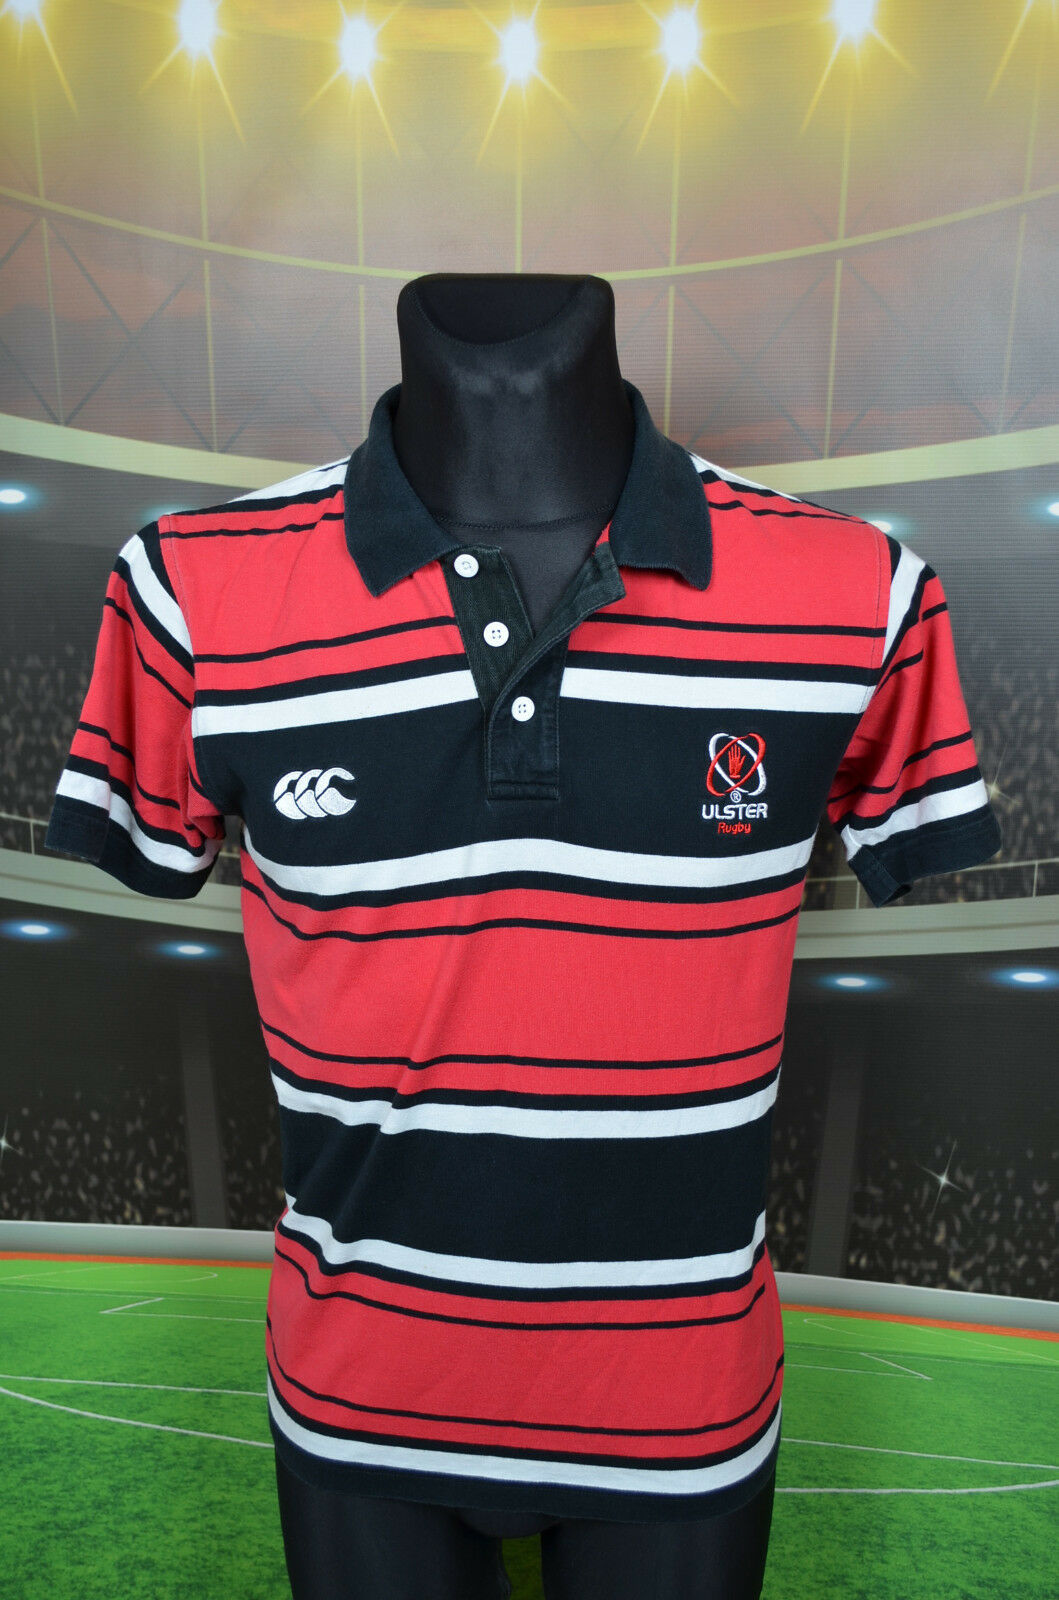 ULSTER CANTERBURY RUGBY UNION SHIRT (M) JERSEY TOP TRIKOT MAGLIA RETRO VTG POLO